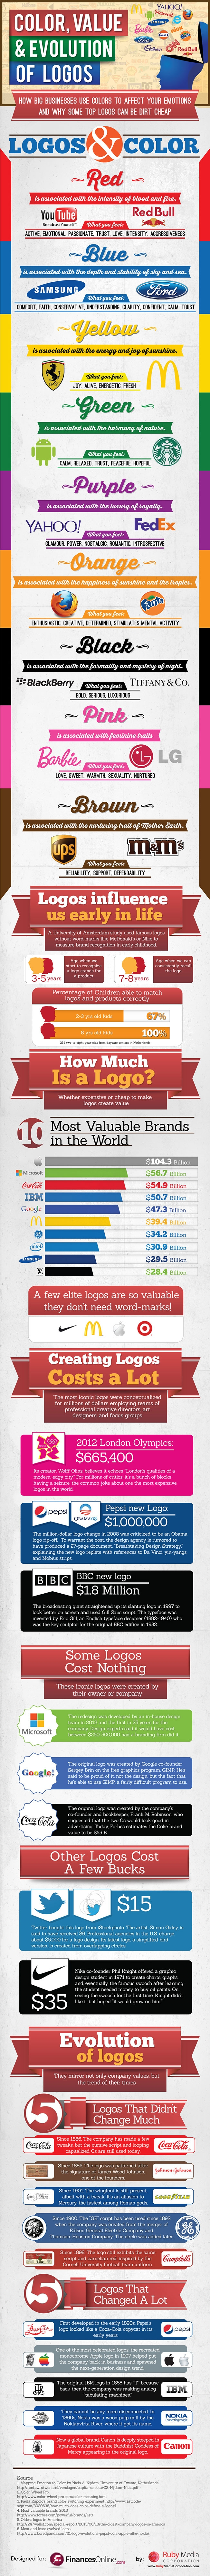 Infographic: What the Color of Your Logo Says About Your Brand – Adweek